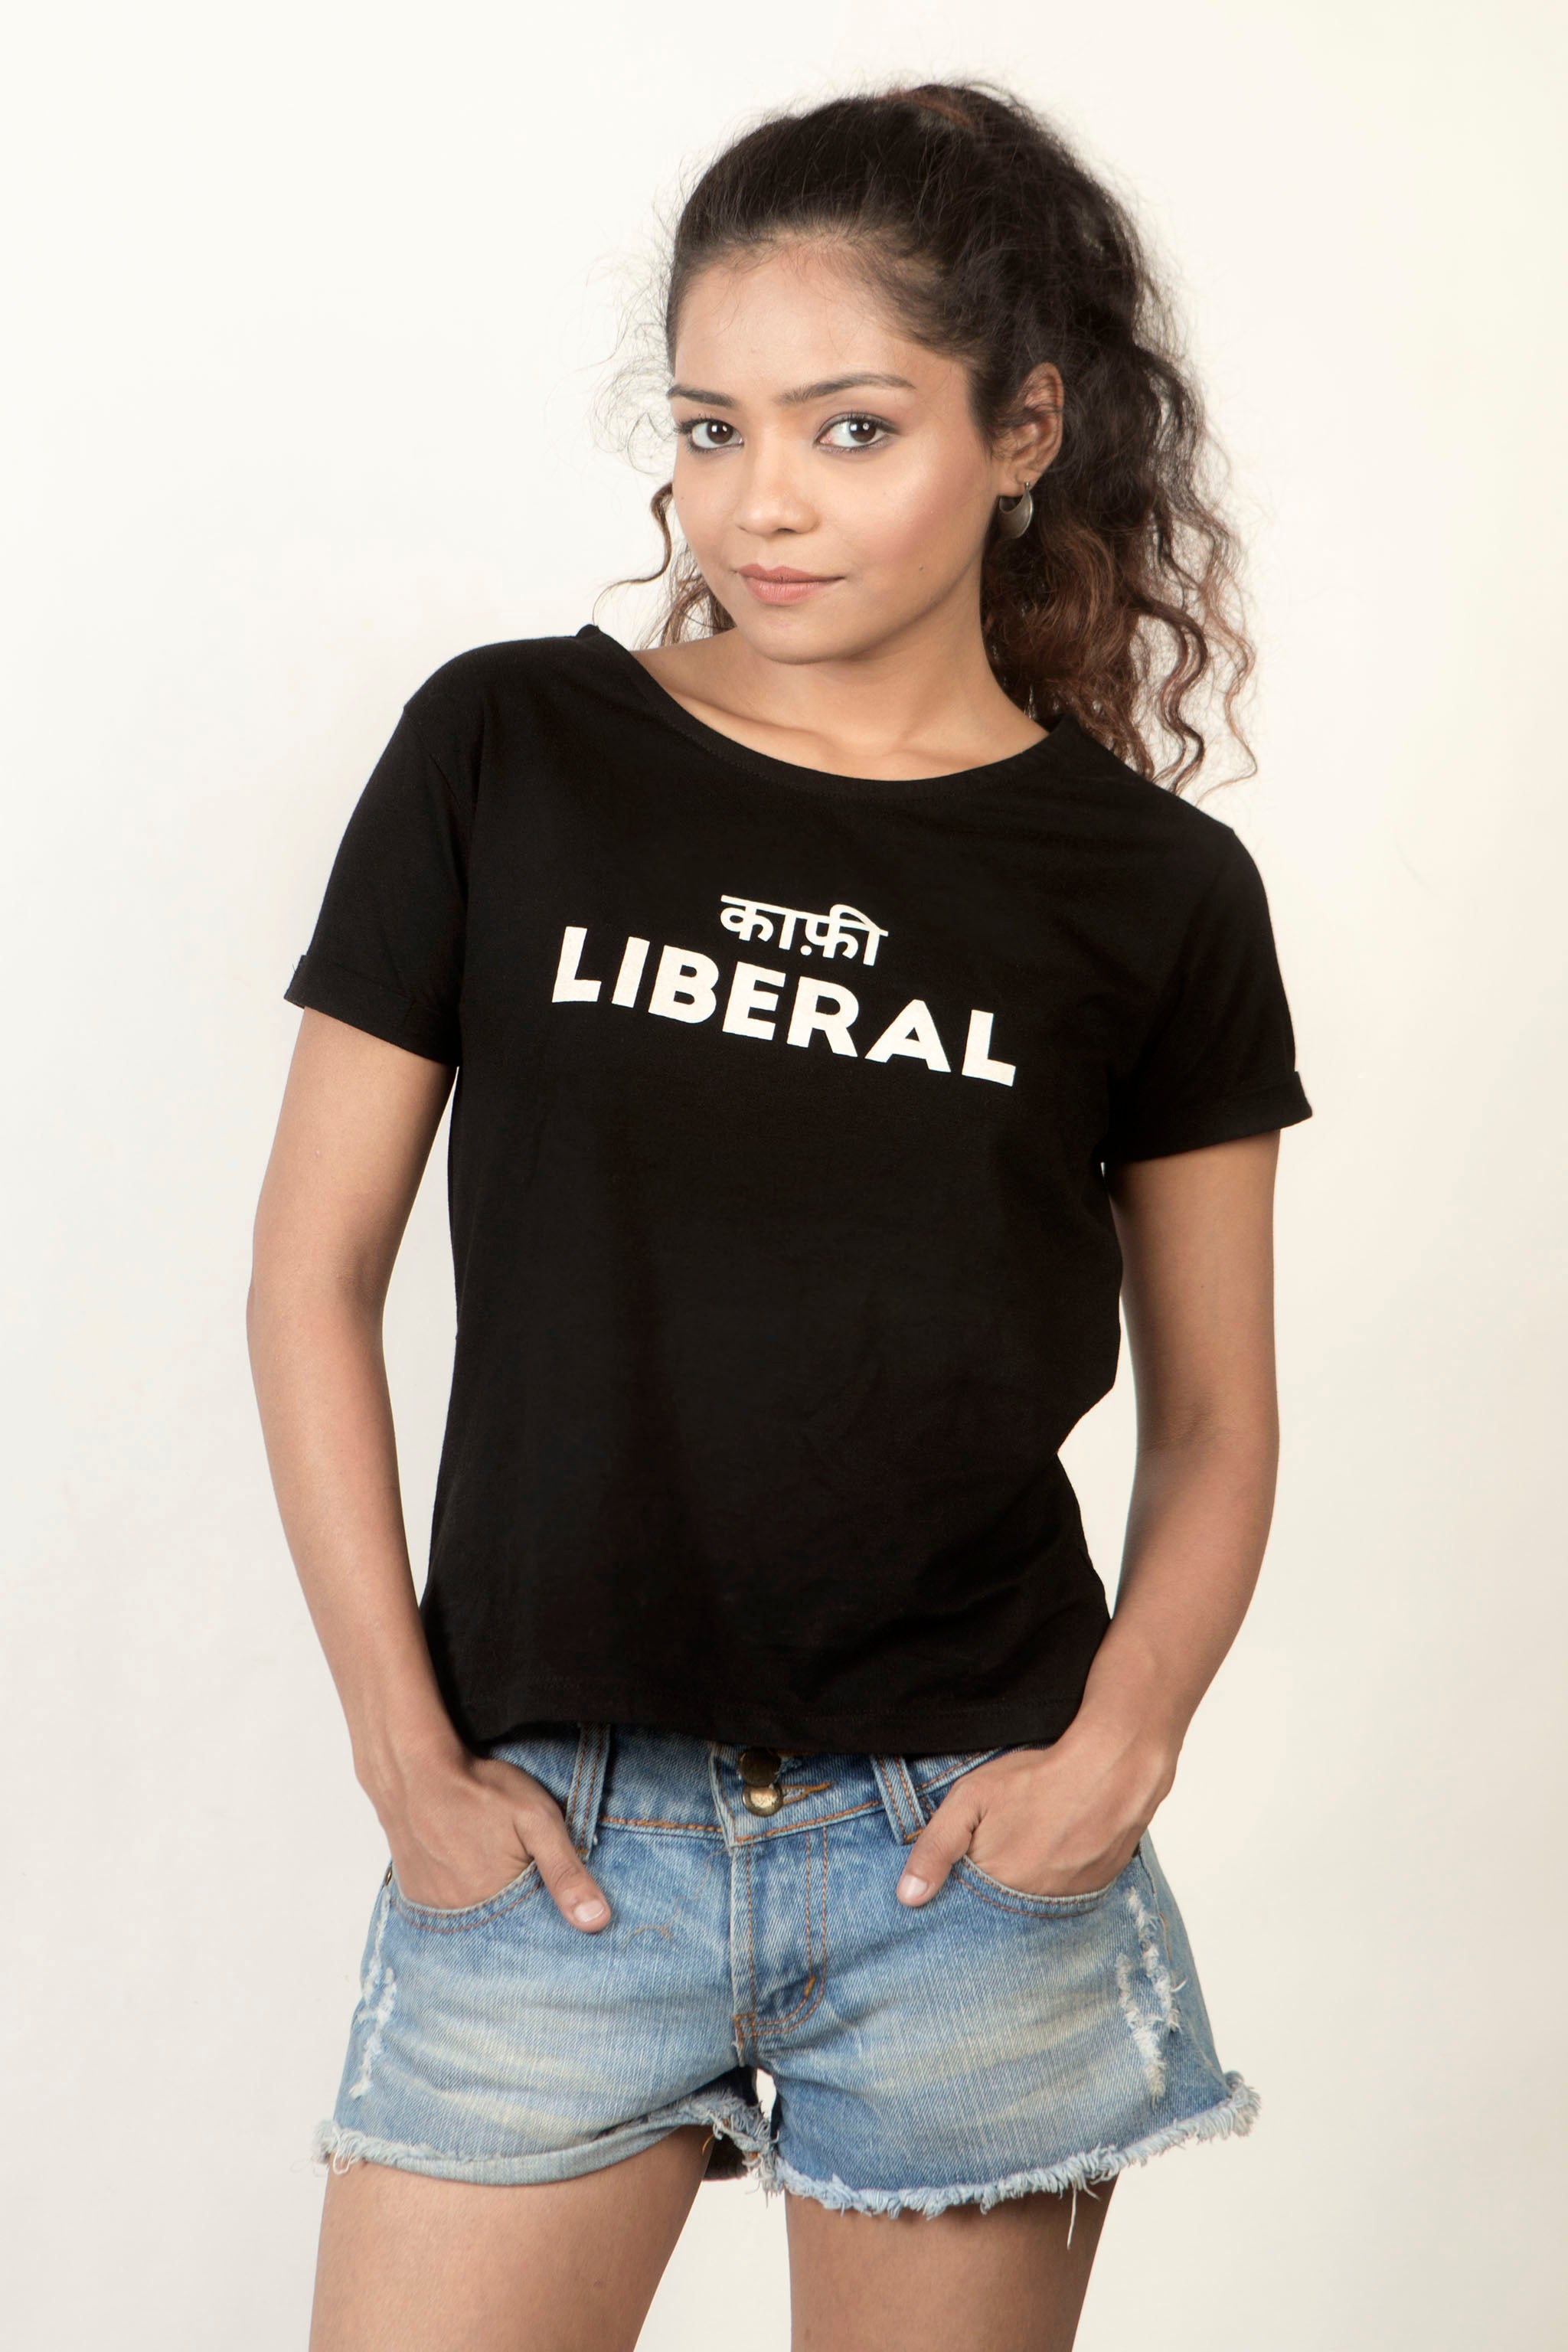 Buy Kaafi Liberal (Black) Women's T-Shirt Online In India At